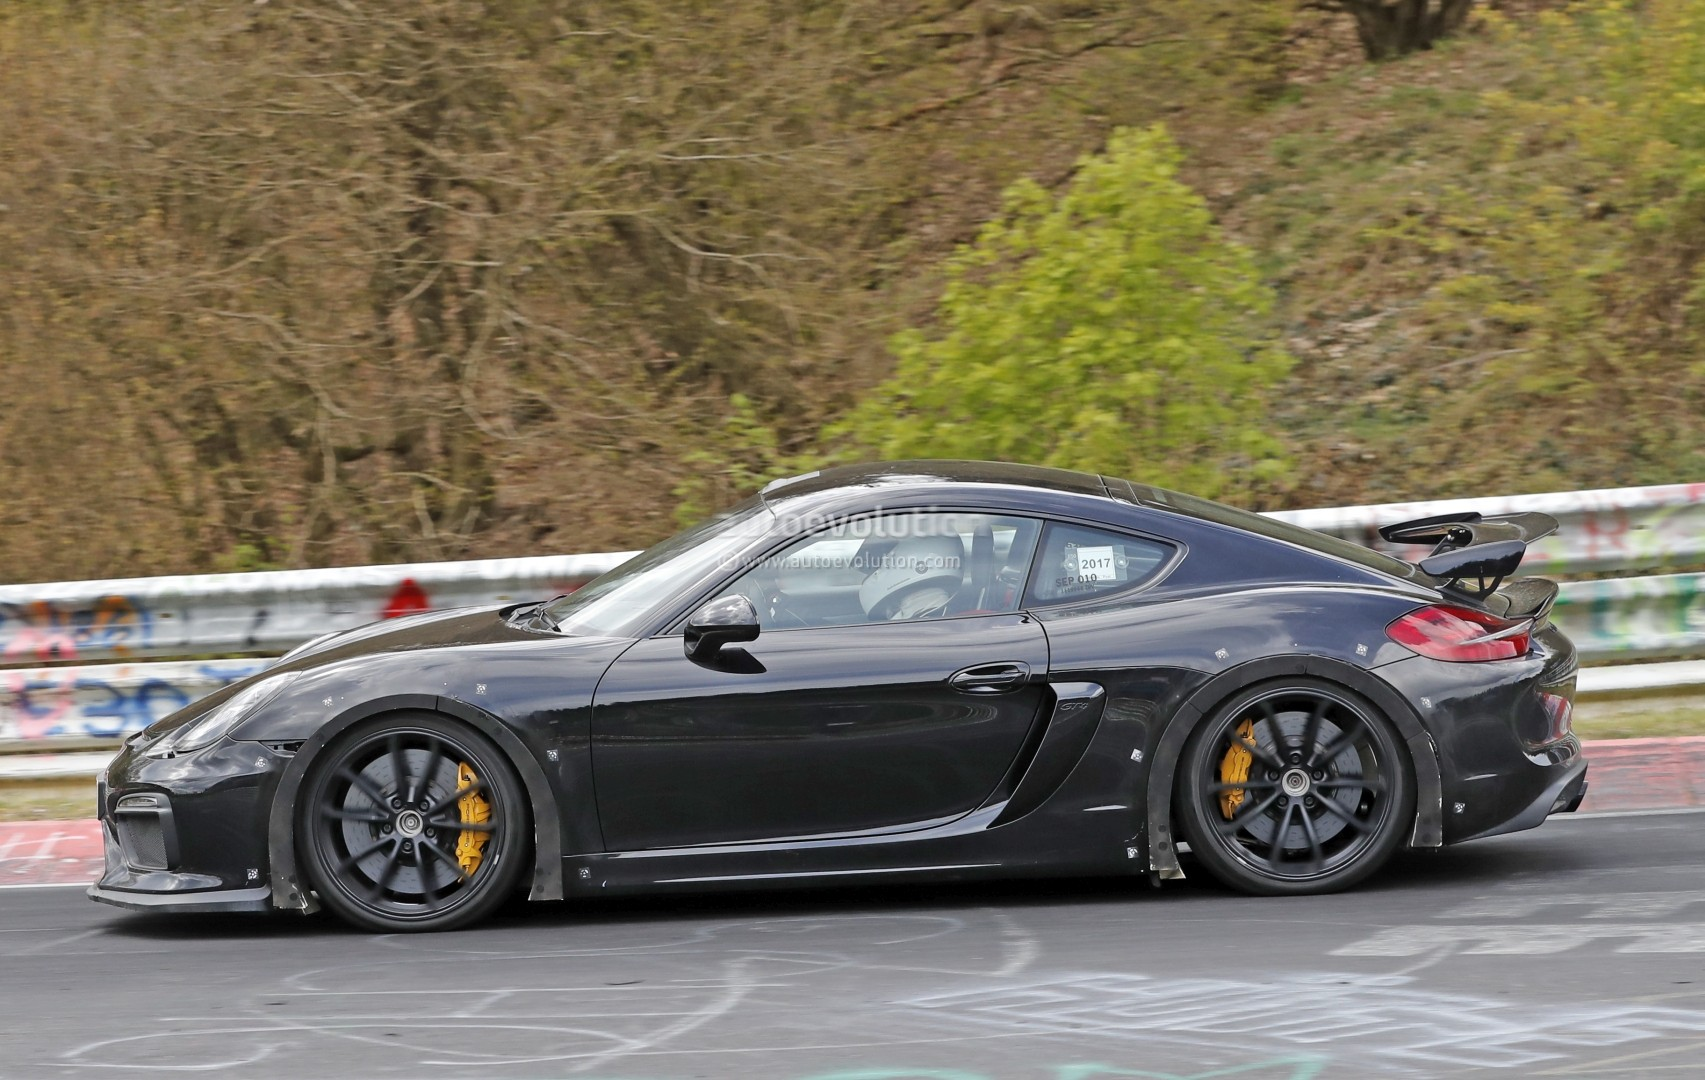 2019 Porsche Cayman Gt4 >> Next Porsche Cayman GT4 Spied on Nurburgring, Prototype May Pack 2018 GT3 Motor - autoevolution